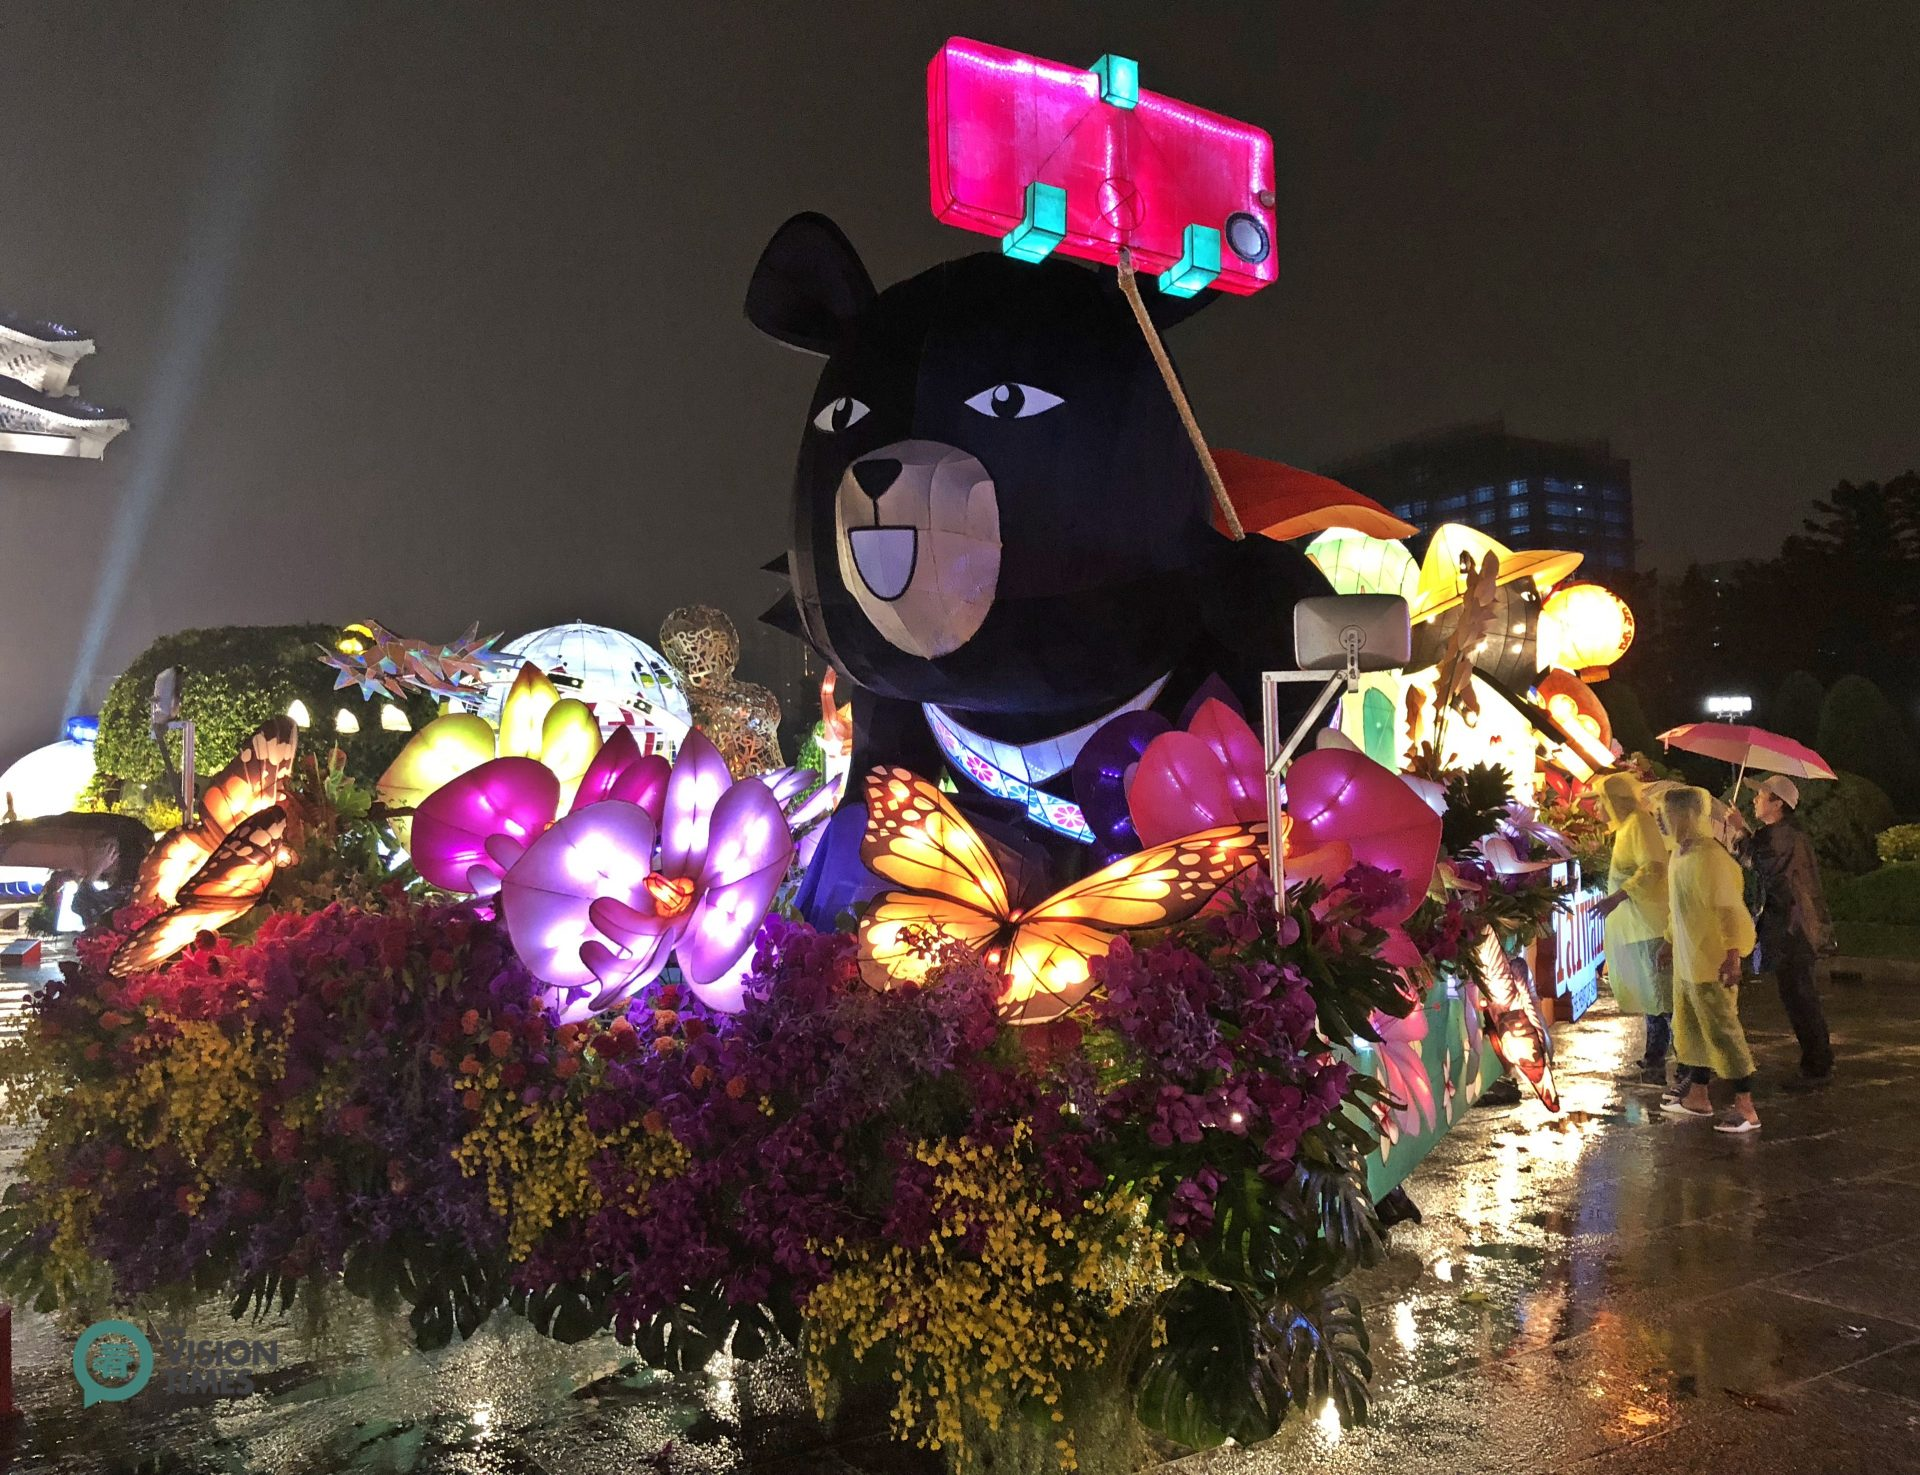 The float featuring Taipei's mascot Bravo Bear is displayed at plaza of the Chiang Kai-shek Memorial. (Image: Billy Shyu / Vision Times)